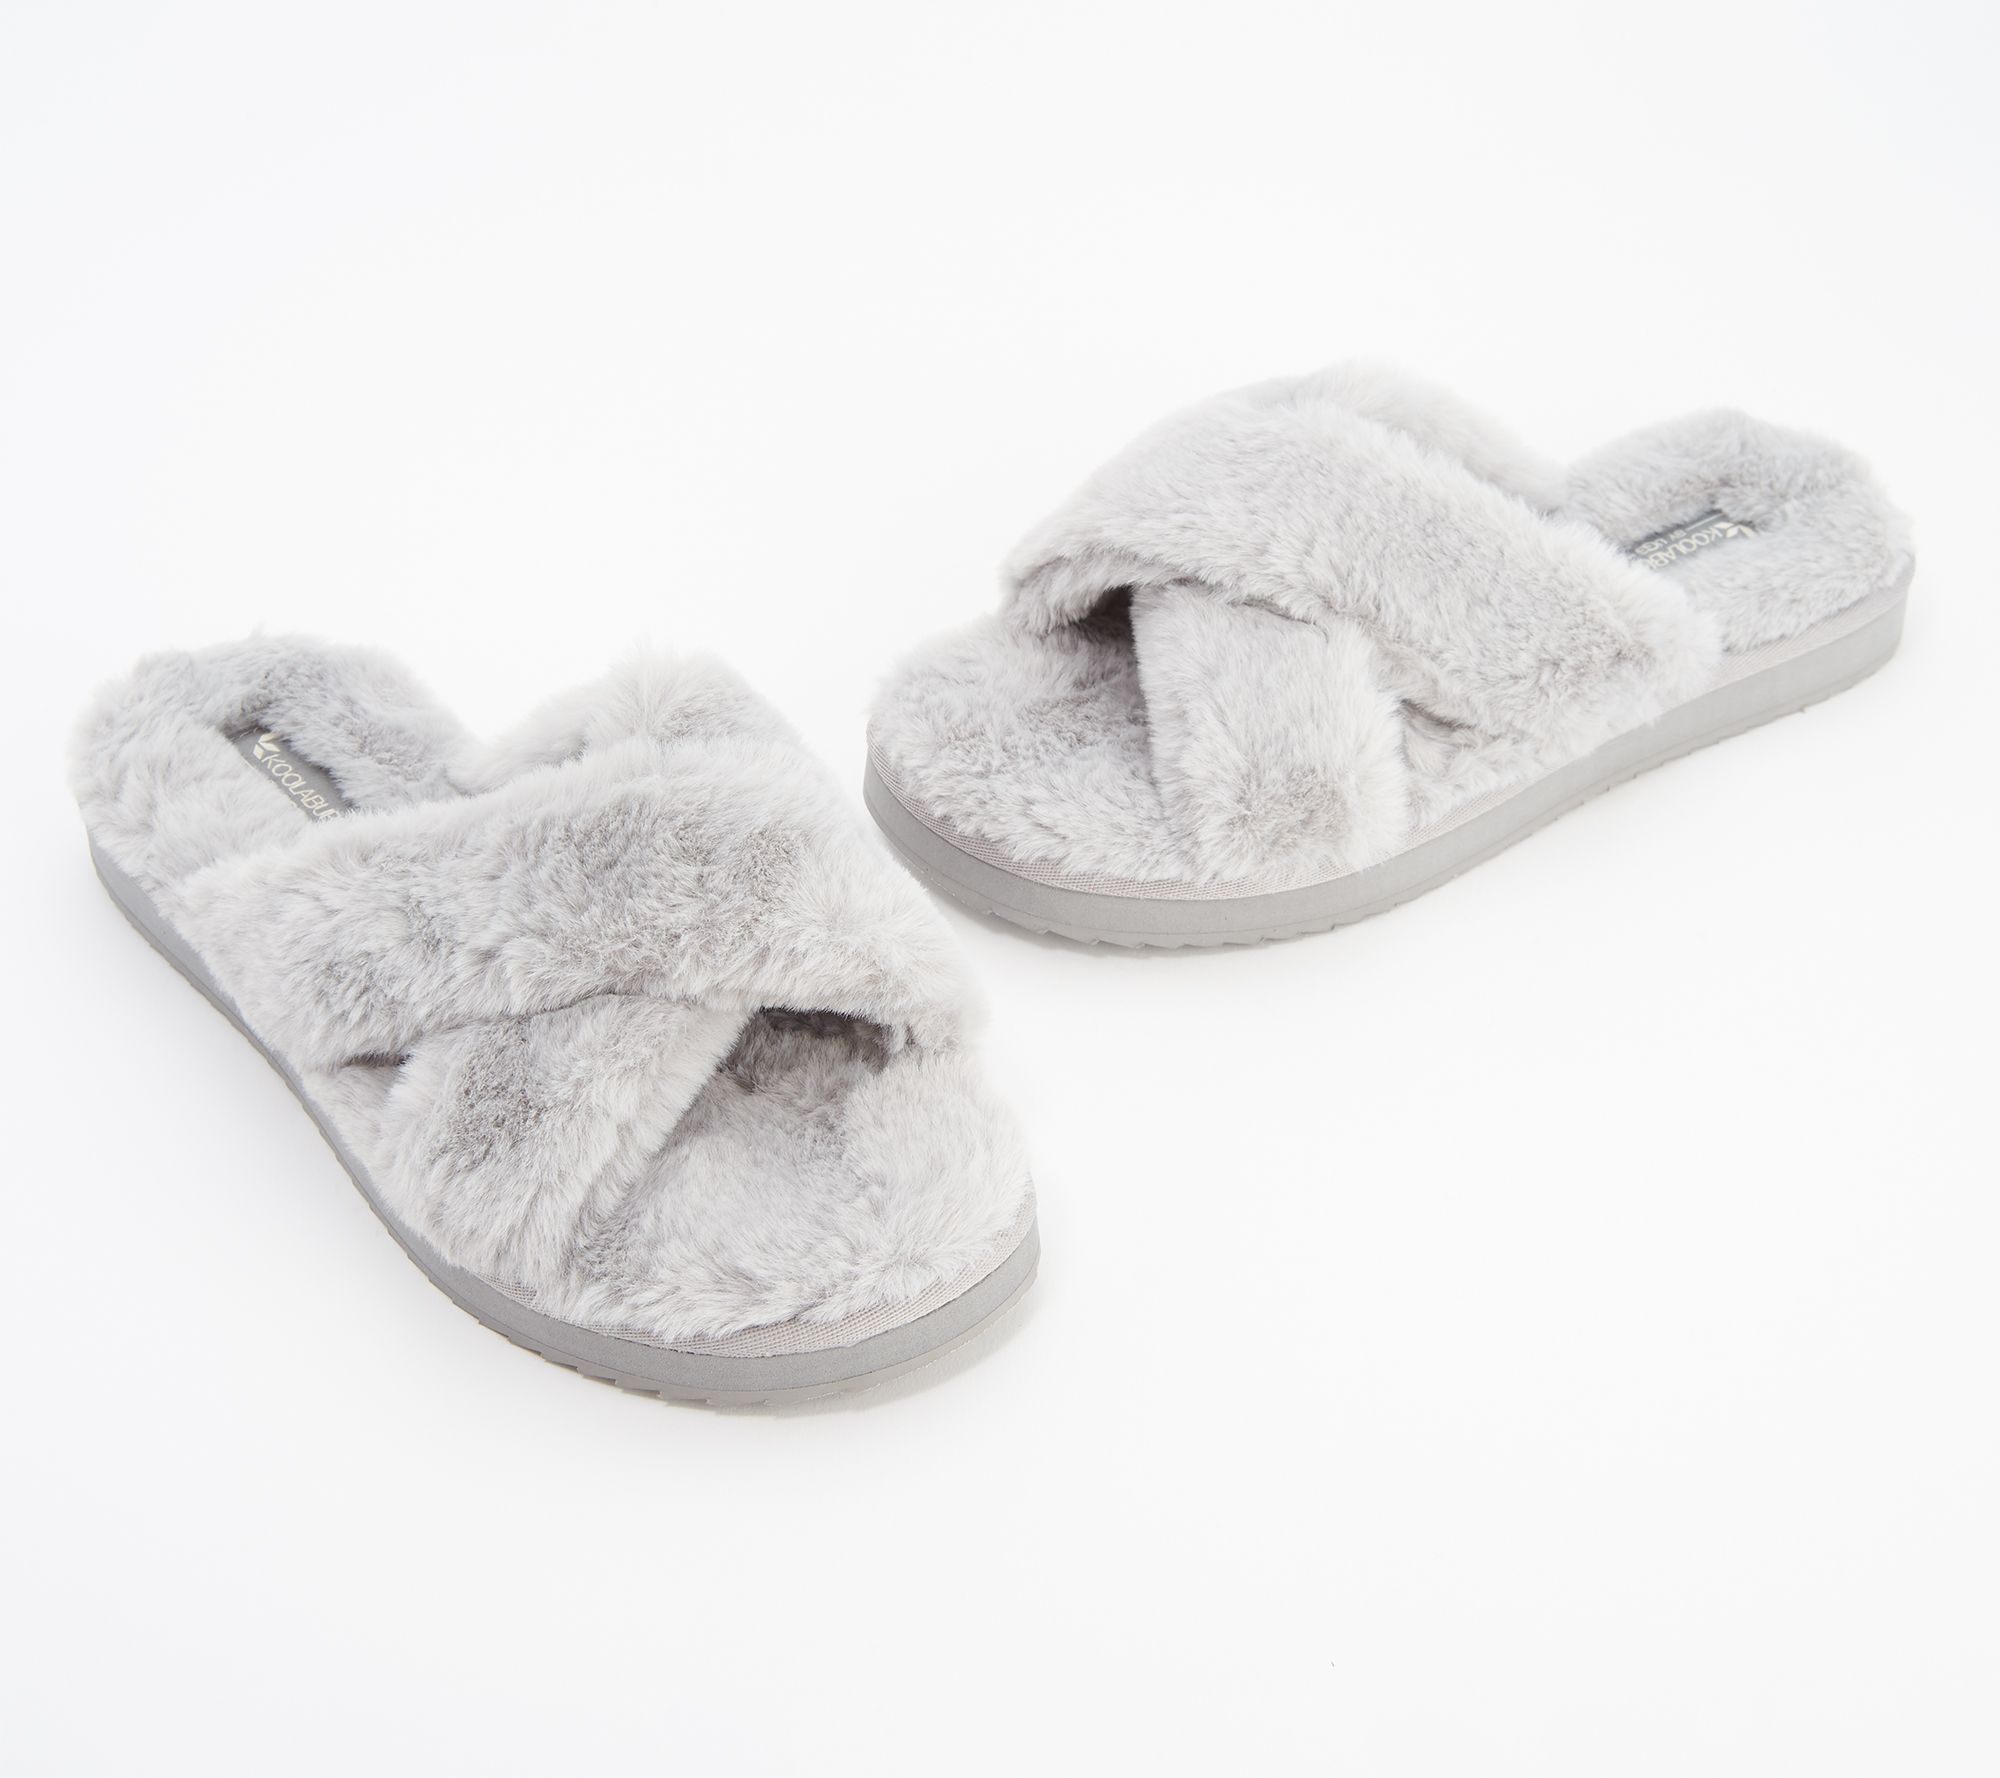 Koolaburra By Ugg Cross Band Slippers   Ballia by Koolaburra By Ugg